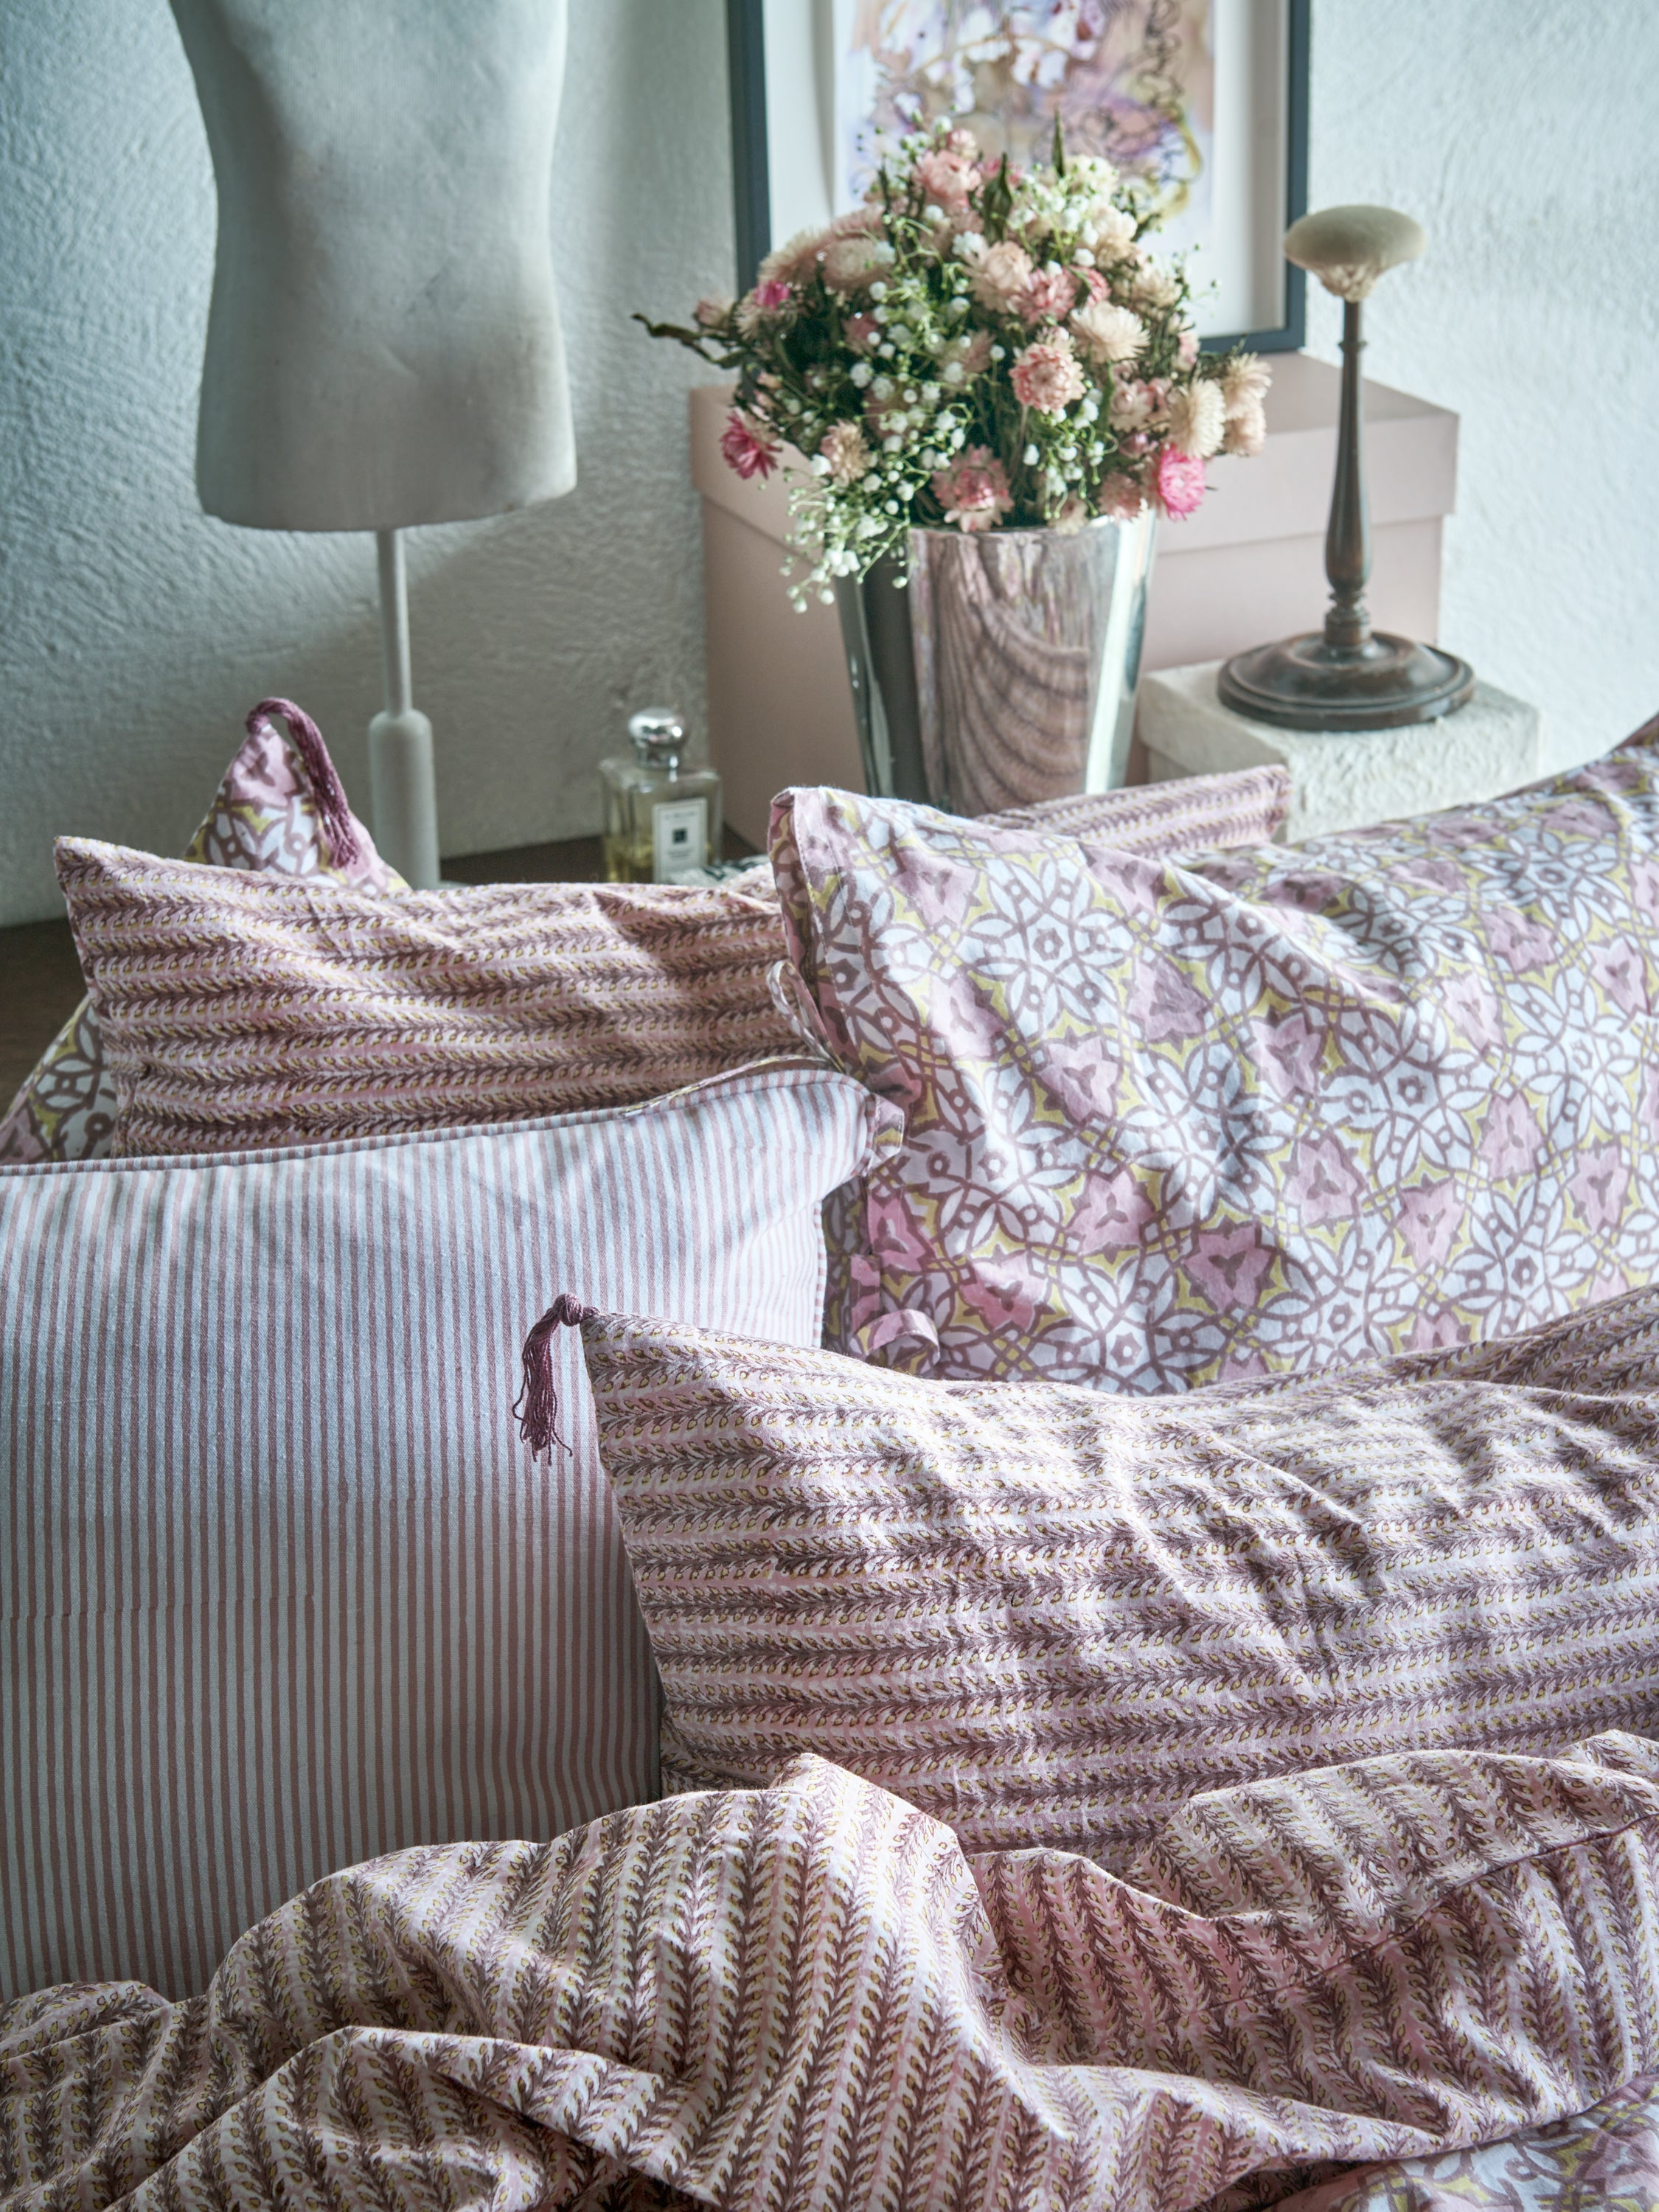 Pillowcase with City Palace print in Fuchsia Rose